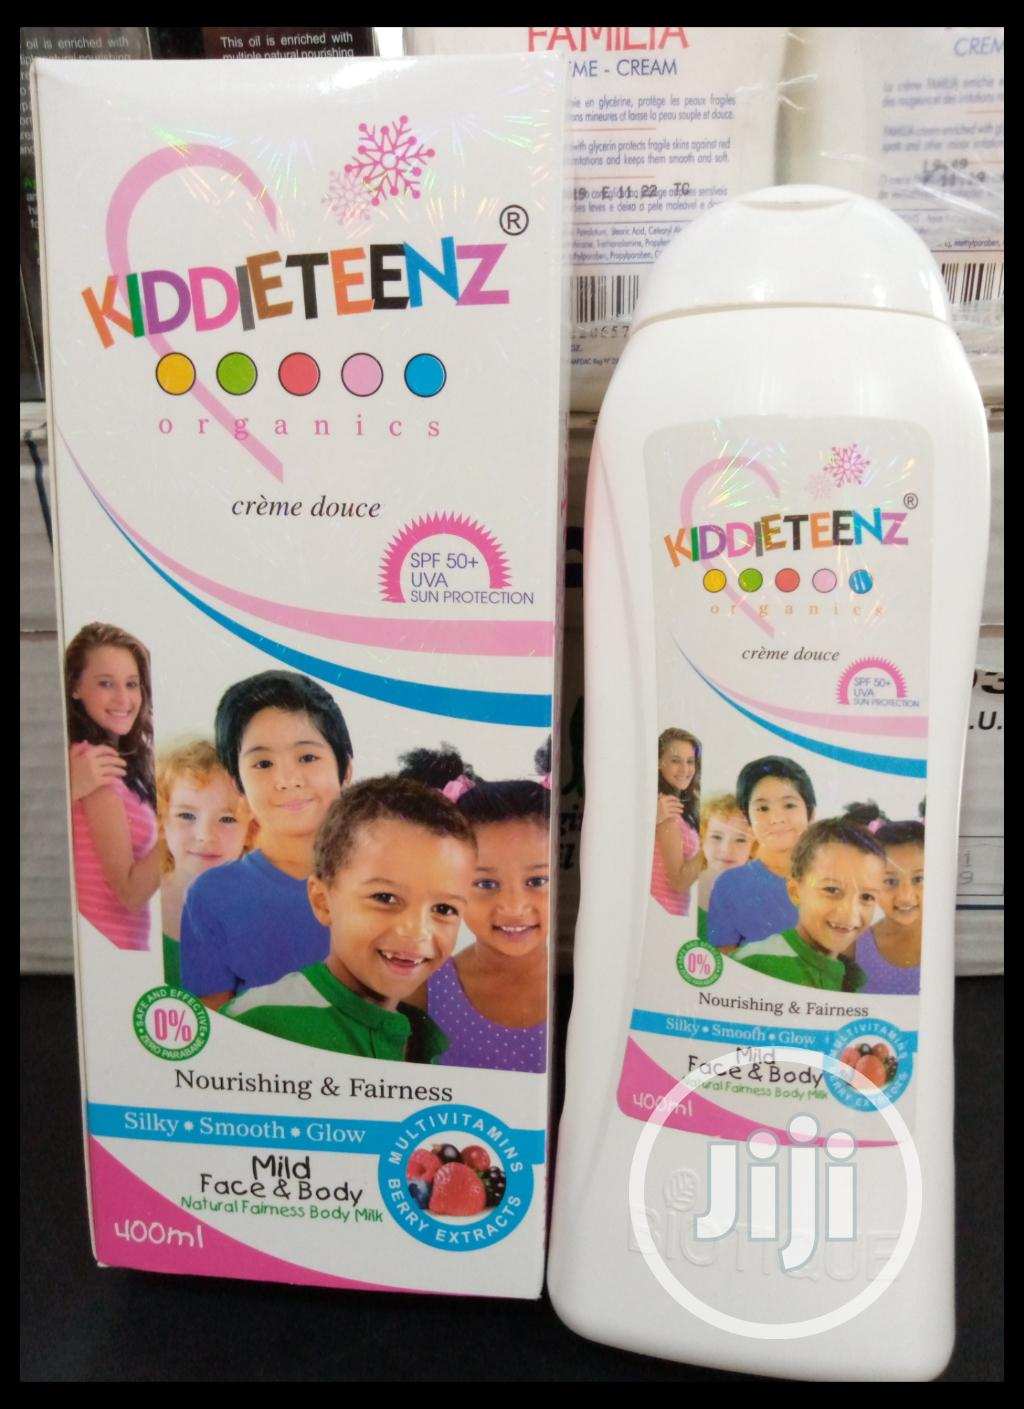 Kiddies Teens Organic Nourishing and Fairness Face Body Baby Lotion